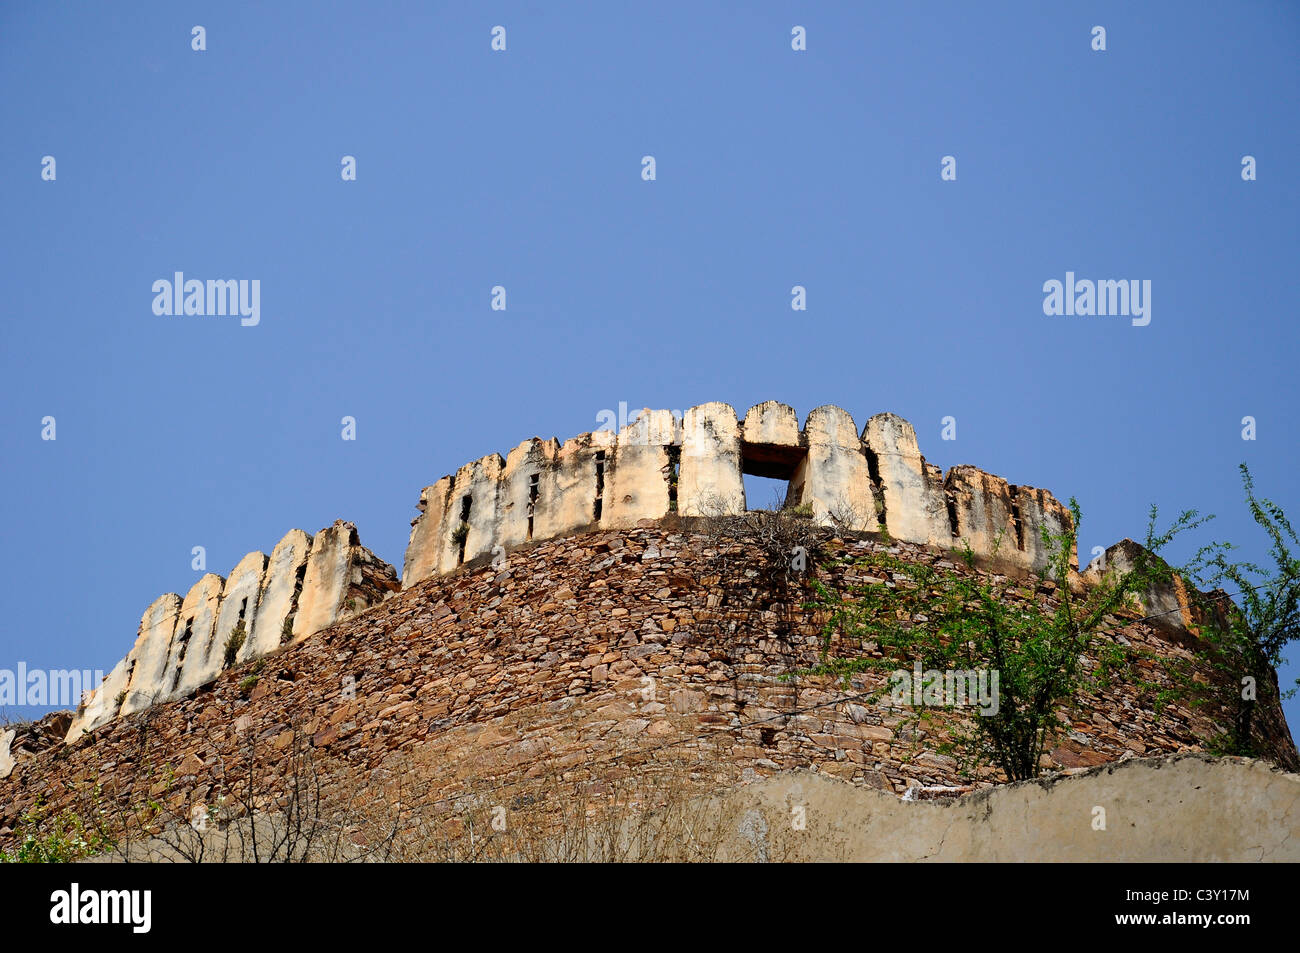 Fortified wall of Taragarh fort of Ajmer - Stock Image